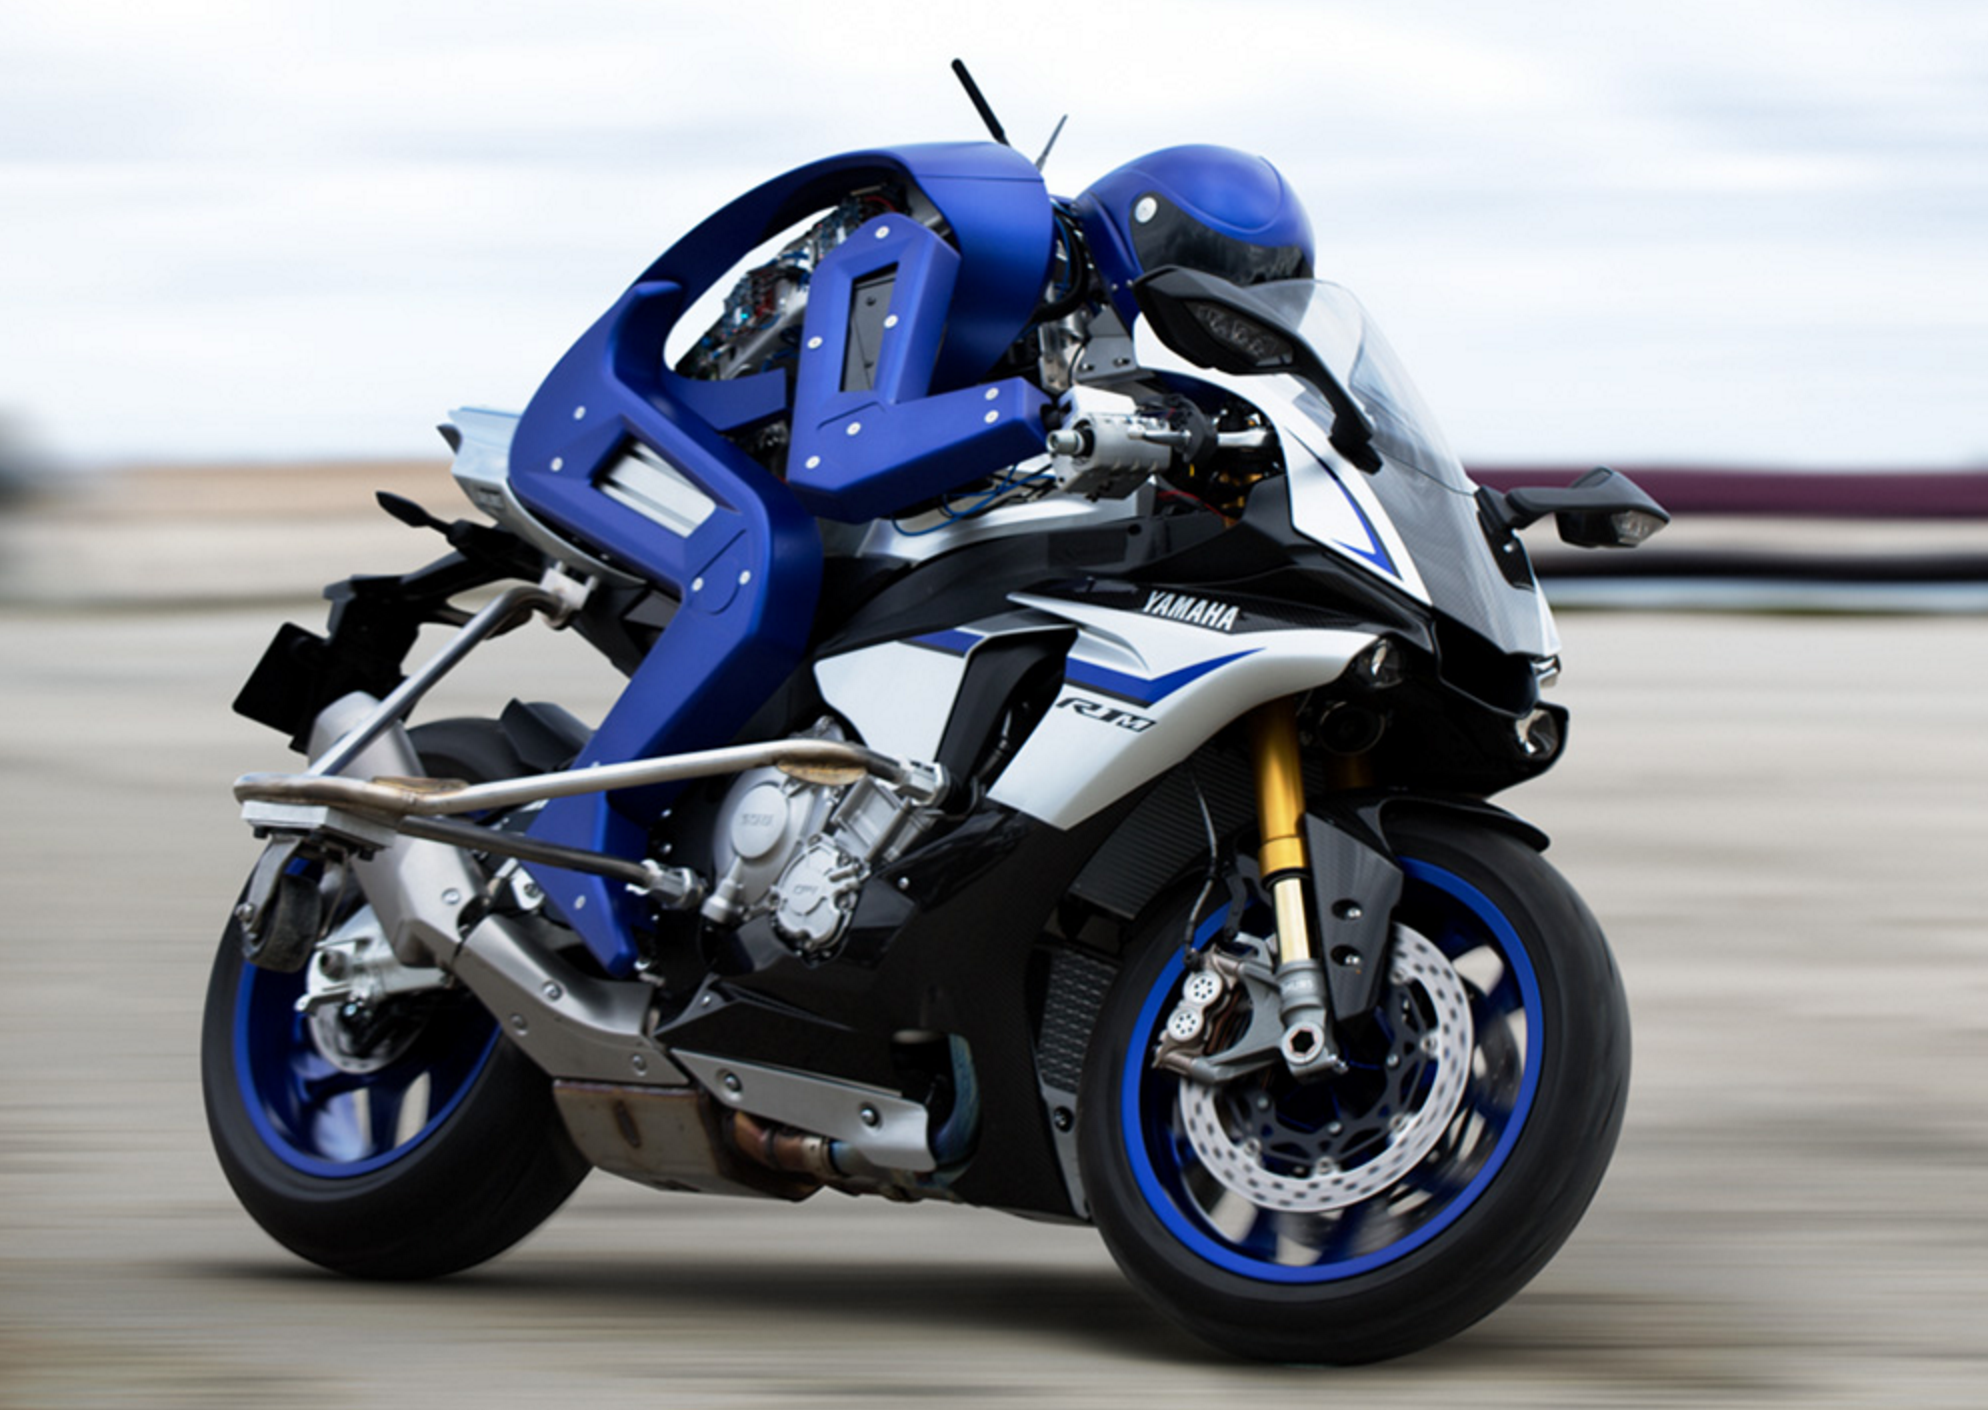 Motorcycle-Riding Robot Has A Mission: To Surpass Humans